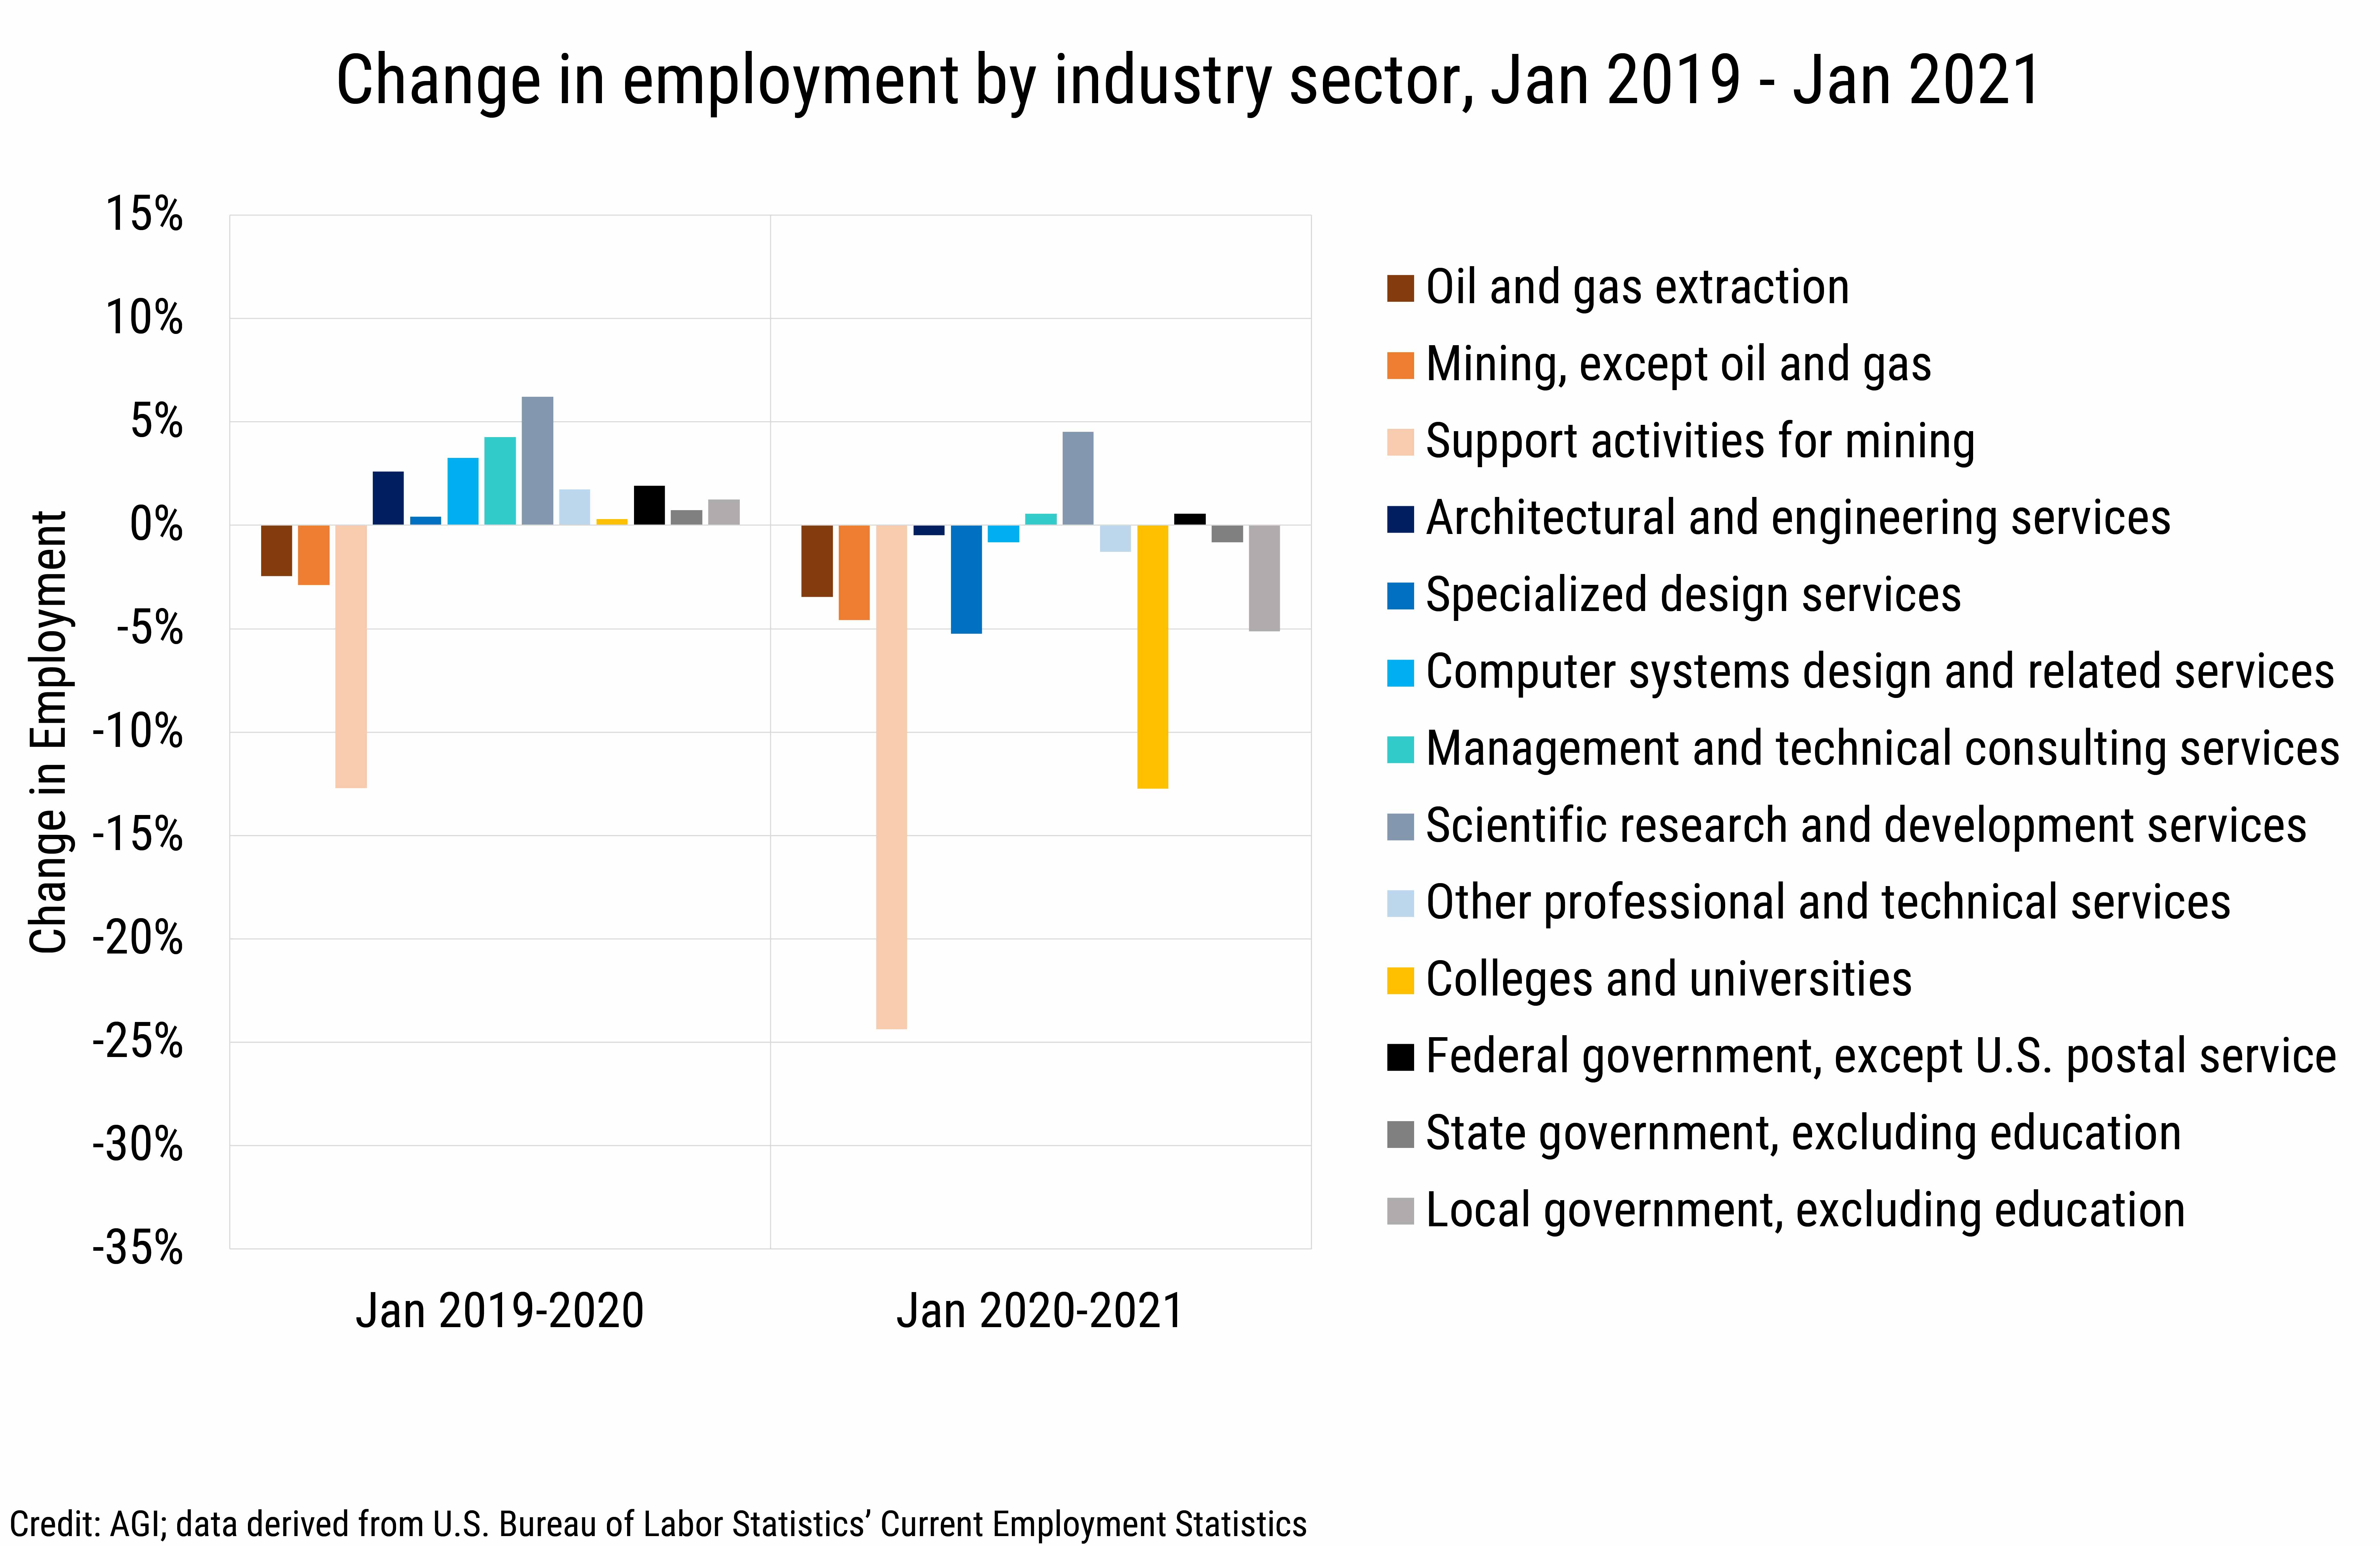 DB_2021-010 chart 04: Change in employment by industry sector, Jan 2019 - Jan 2021 (Credit: AGI, data derived from the U.S. Bureau of Labor Statistics, Current Employment Statistics)